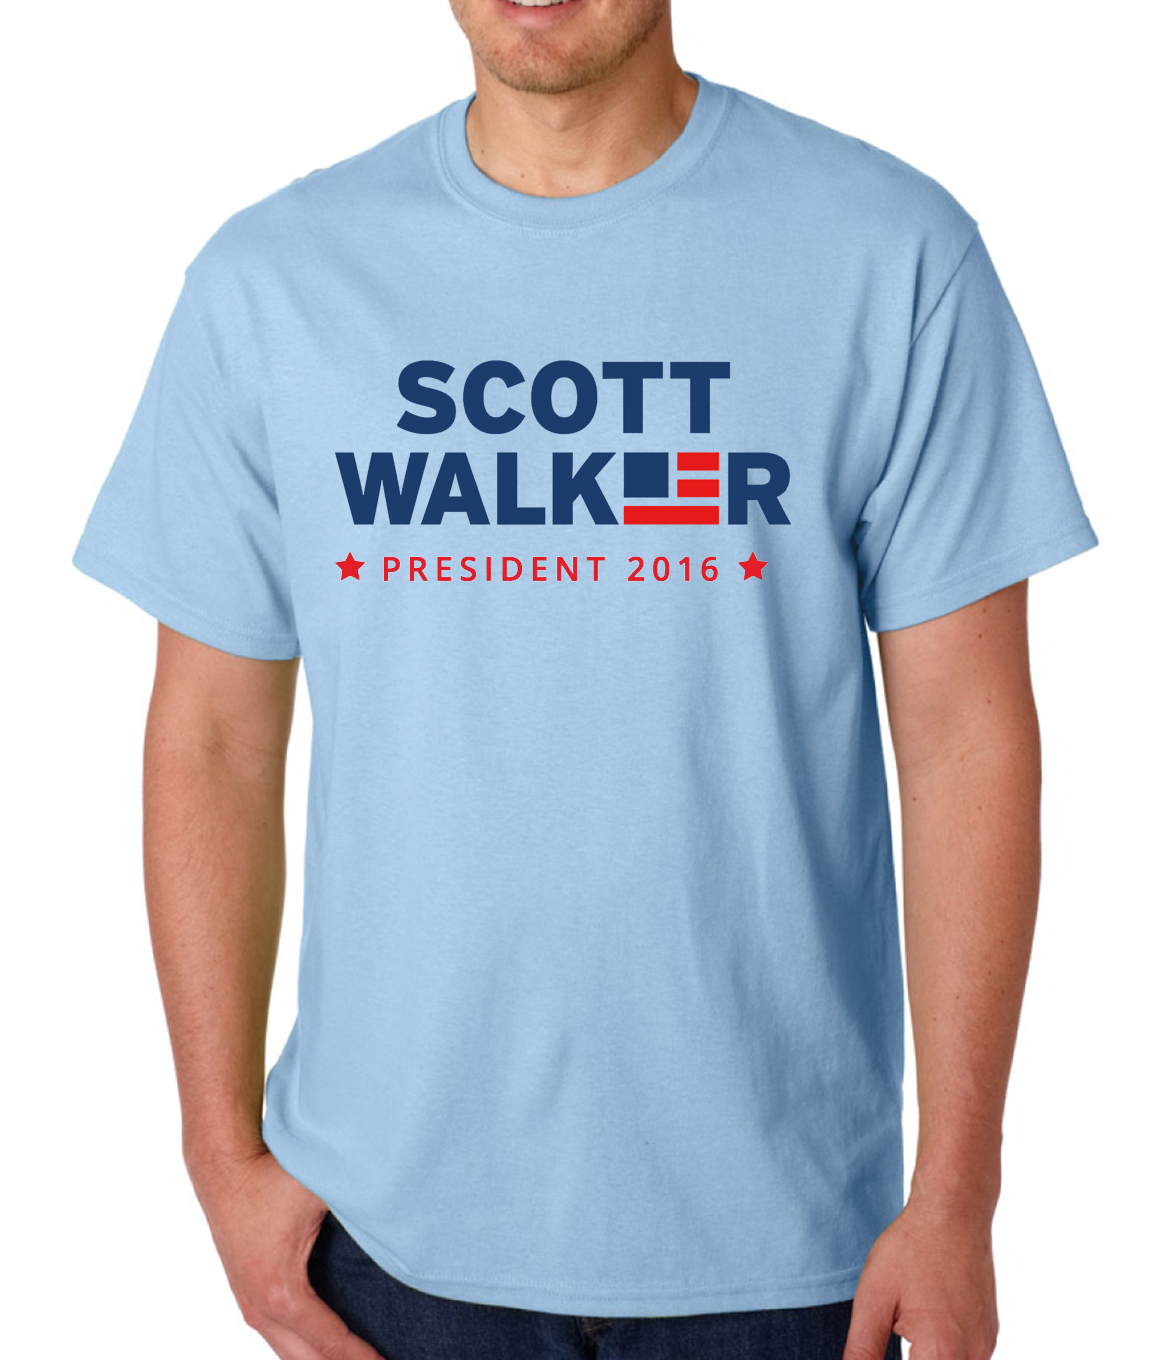 Scott Walker 2016 Presidential Logo Mens Shirt